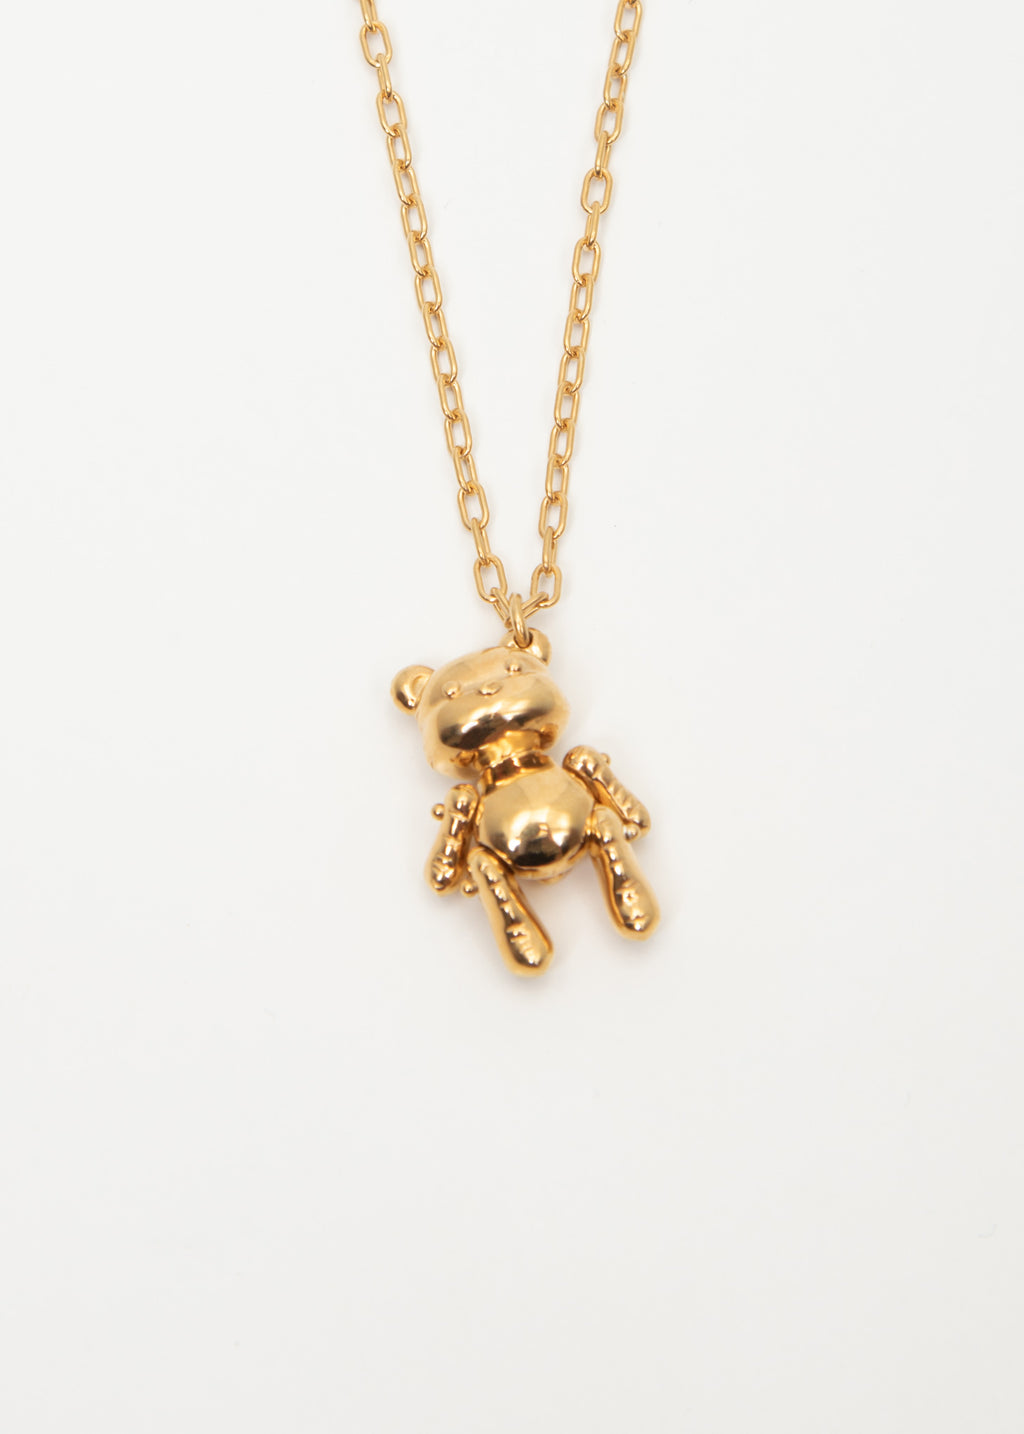 Ambush, Gold Inflatable Teddy Bear Necklace, 017 Shop